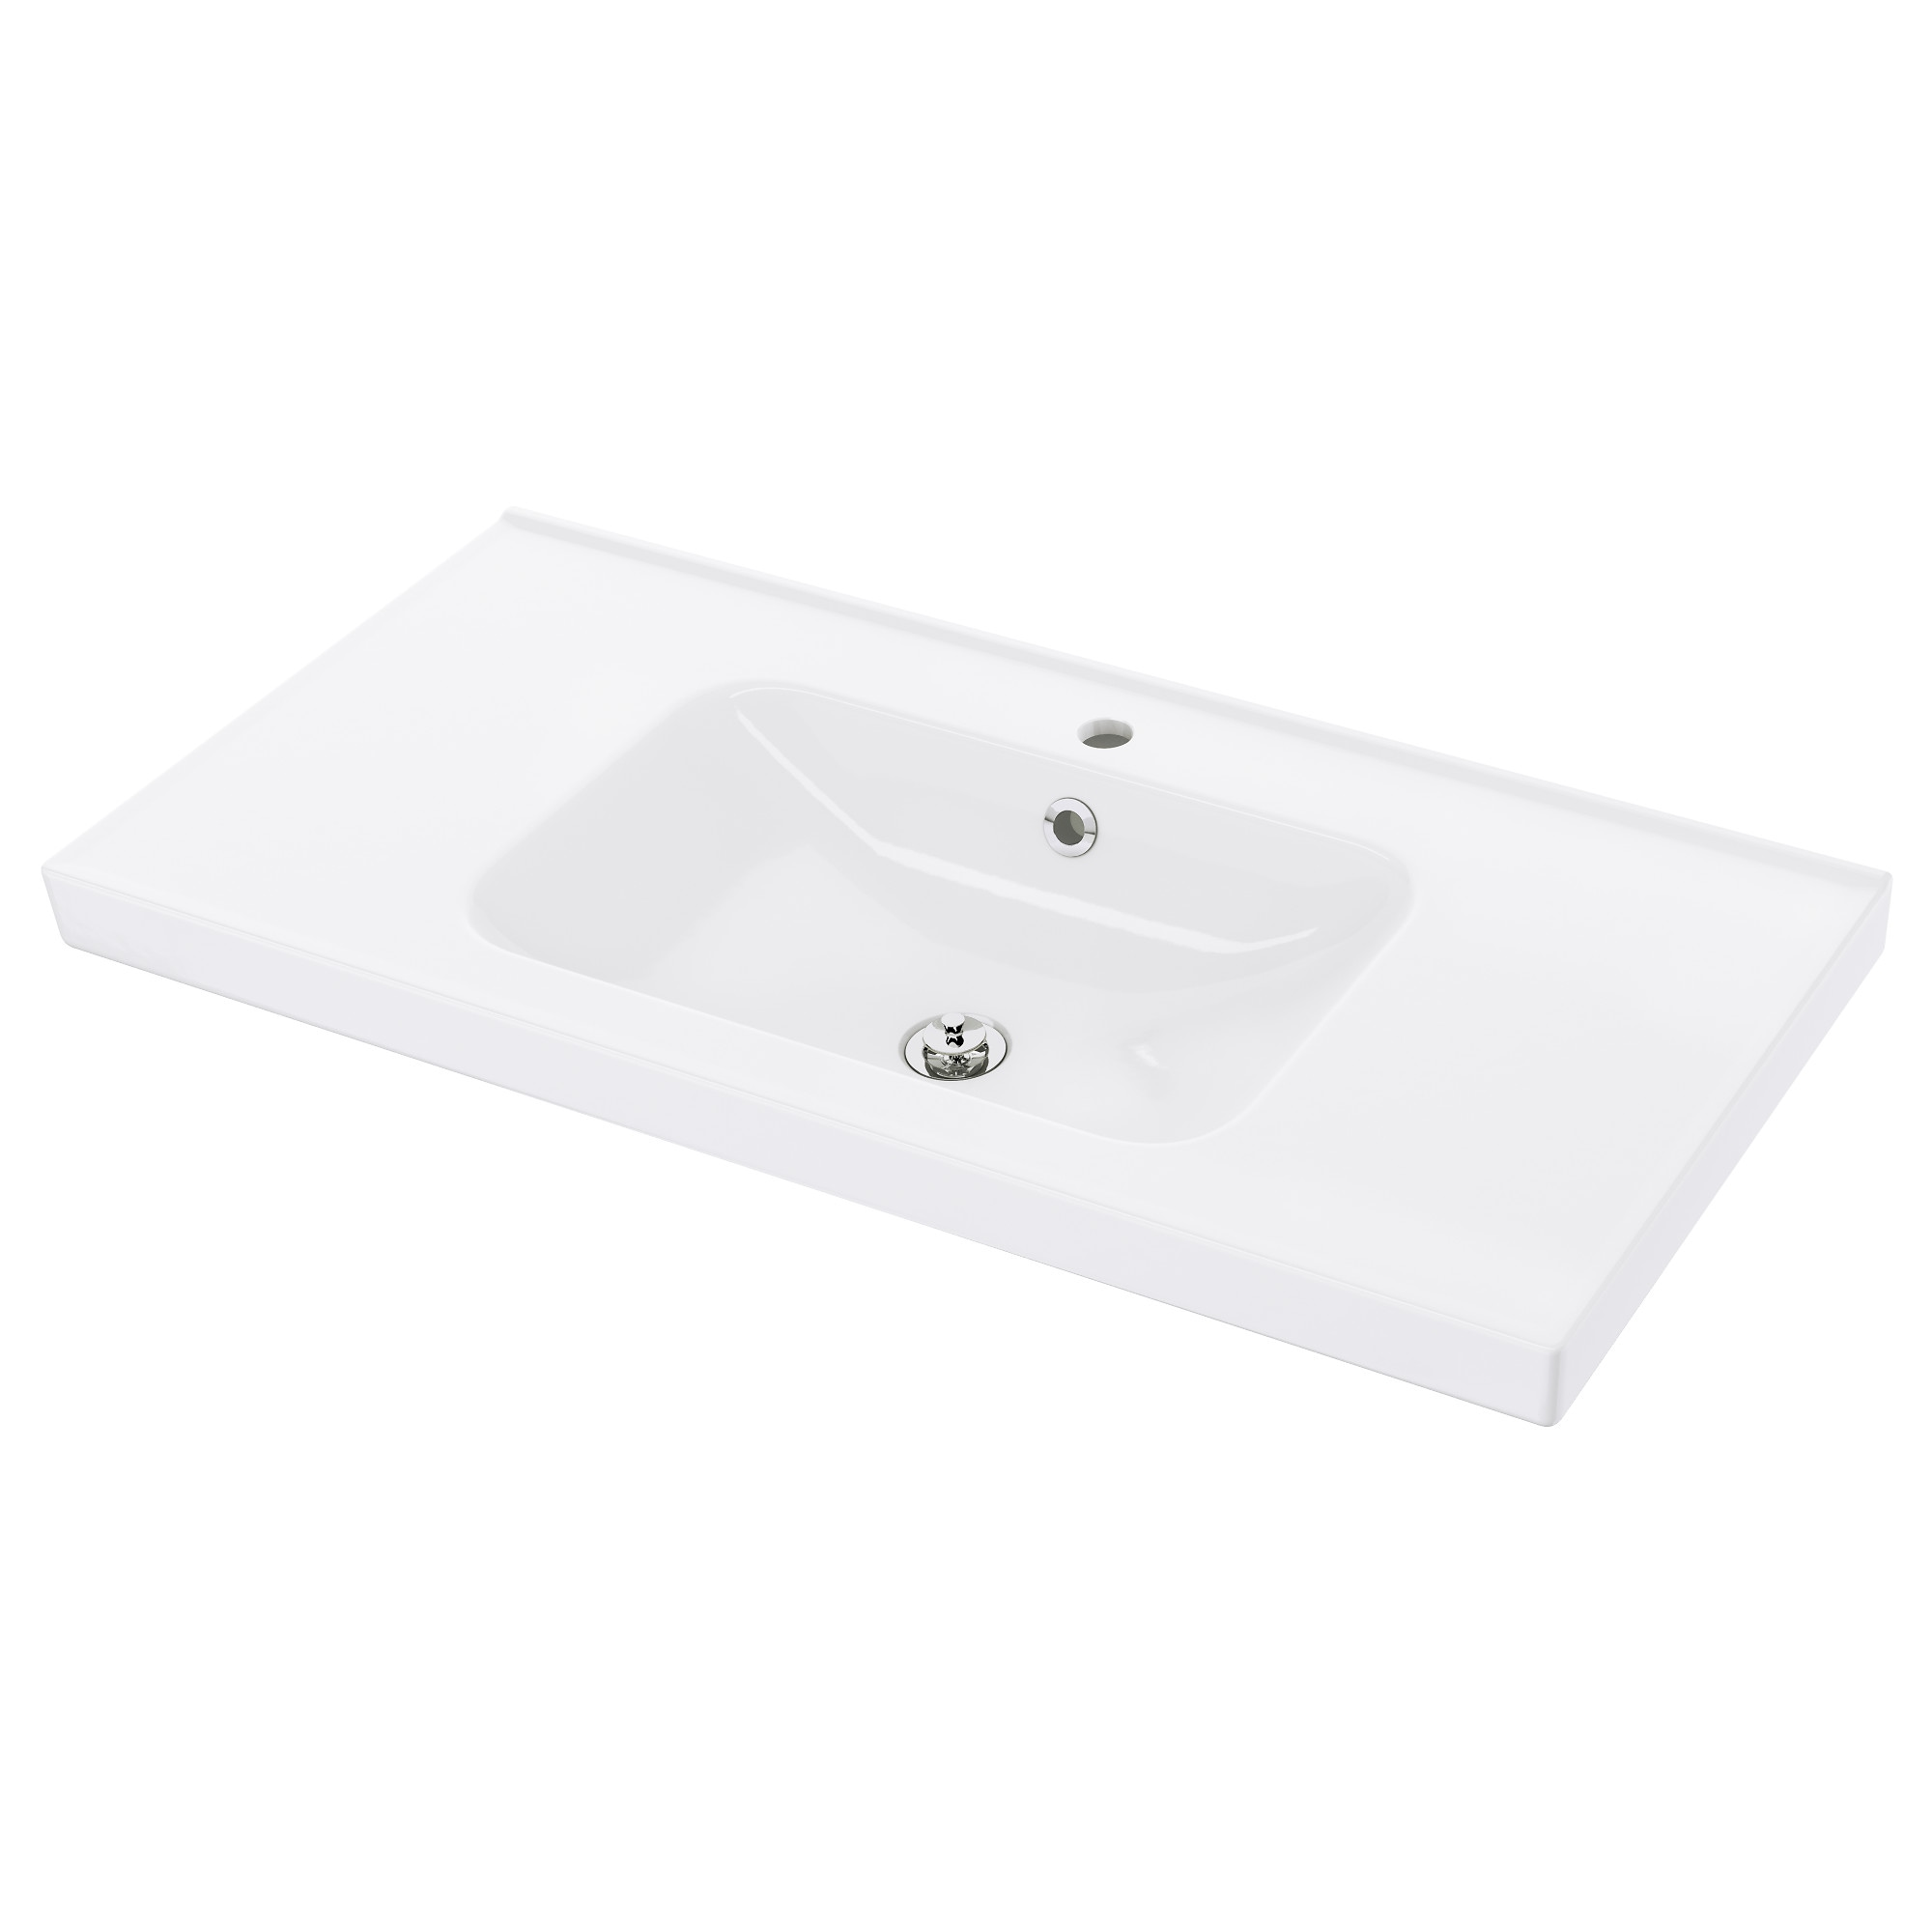 Bathroom Sink Cabinet Base